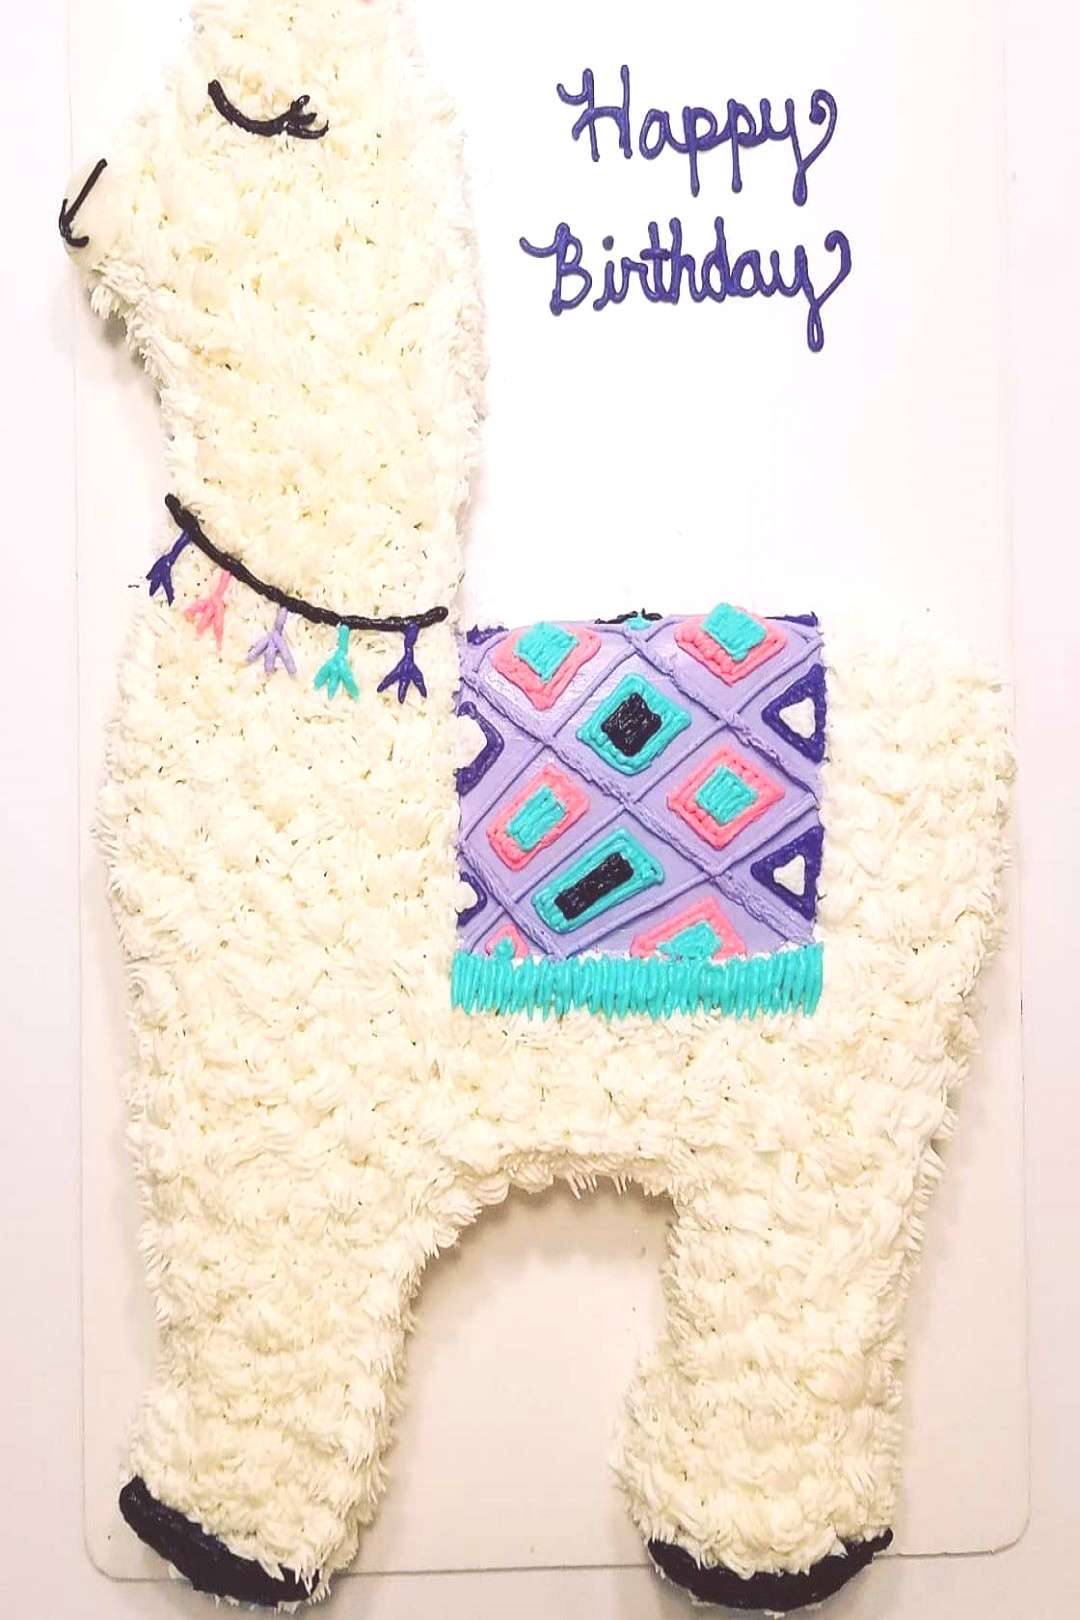 It's a Llama Party! I had so much fun working on this adorable th